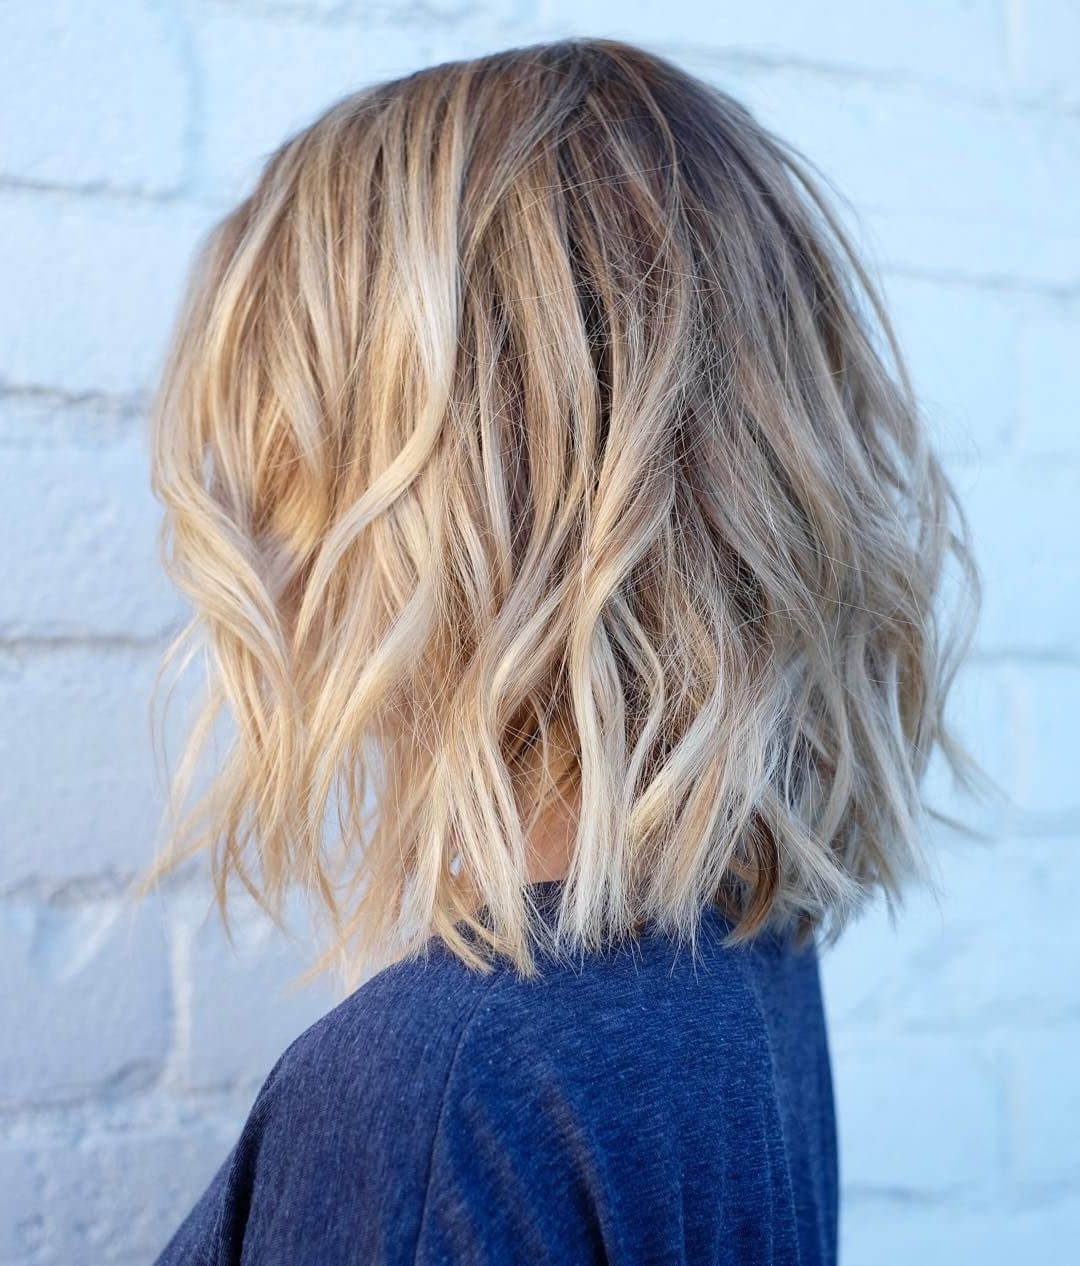 50 Fresh Short Blonde Hair Ideas To Update Your Style In 2018 In Most Recently Released Curly Caramel Blonde Bob Hairstyles (View 8 of 20)